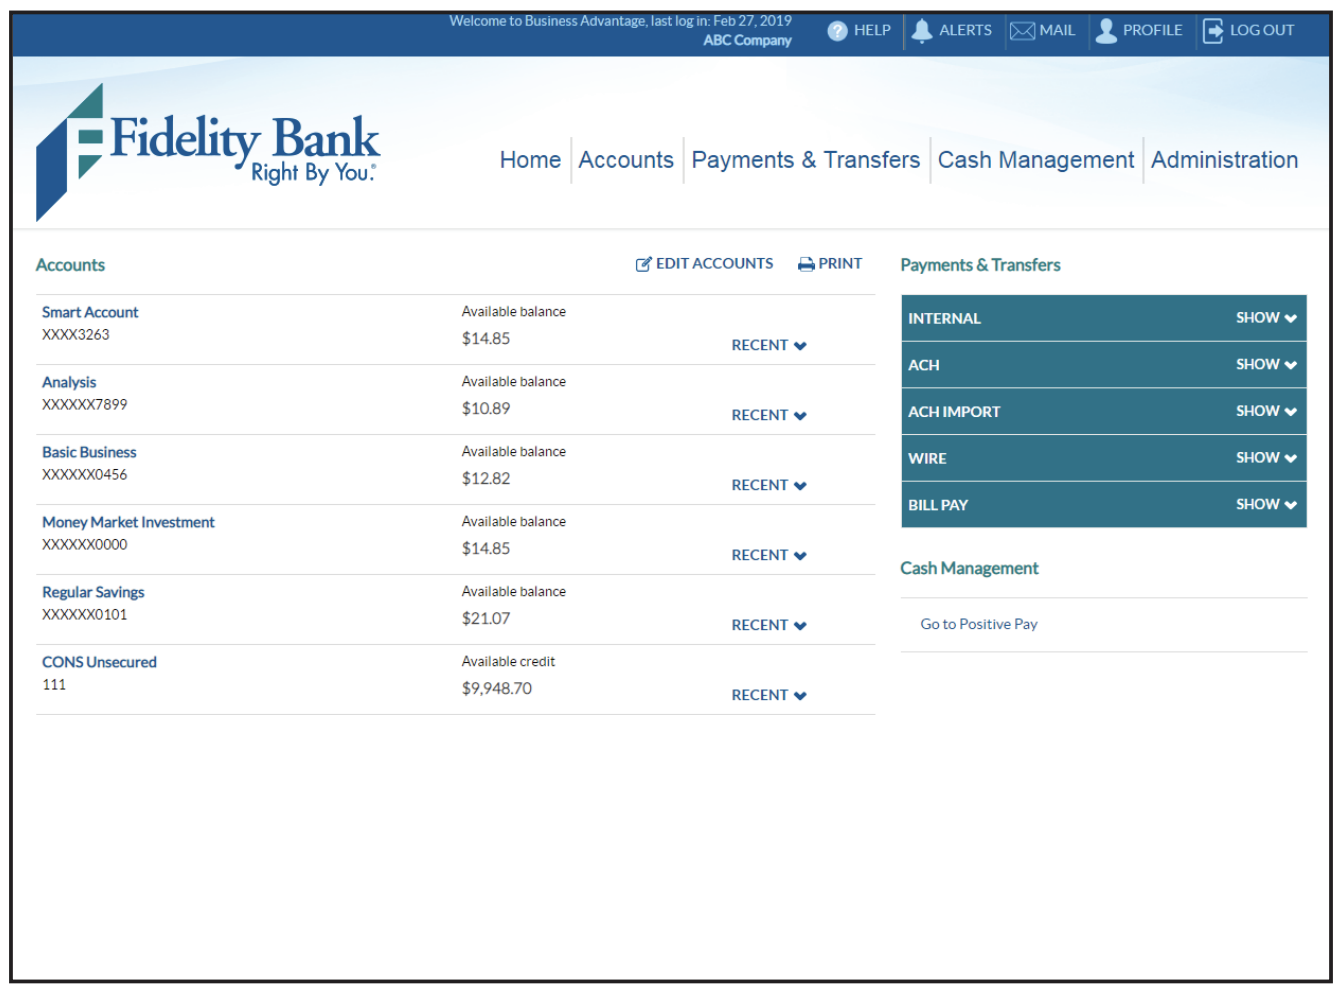 Screen shot of the account summary home page